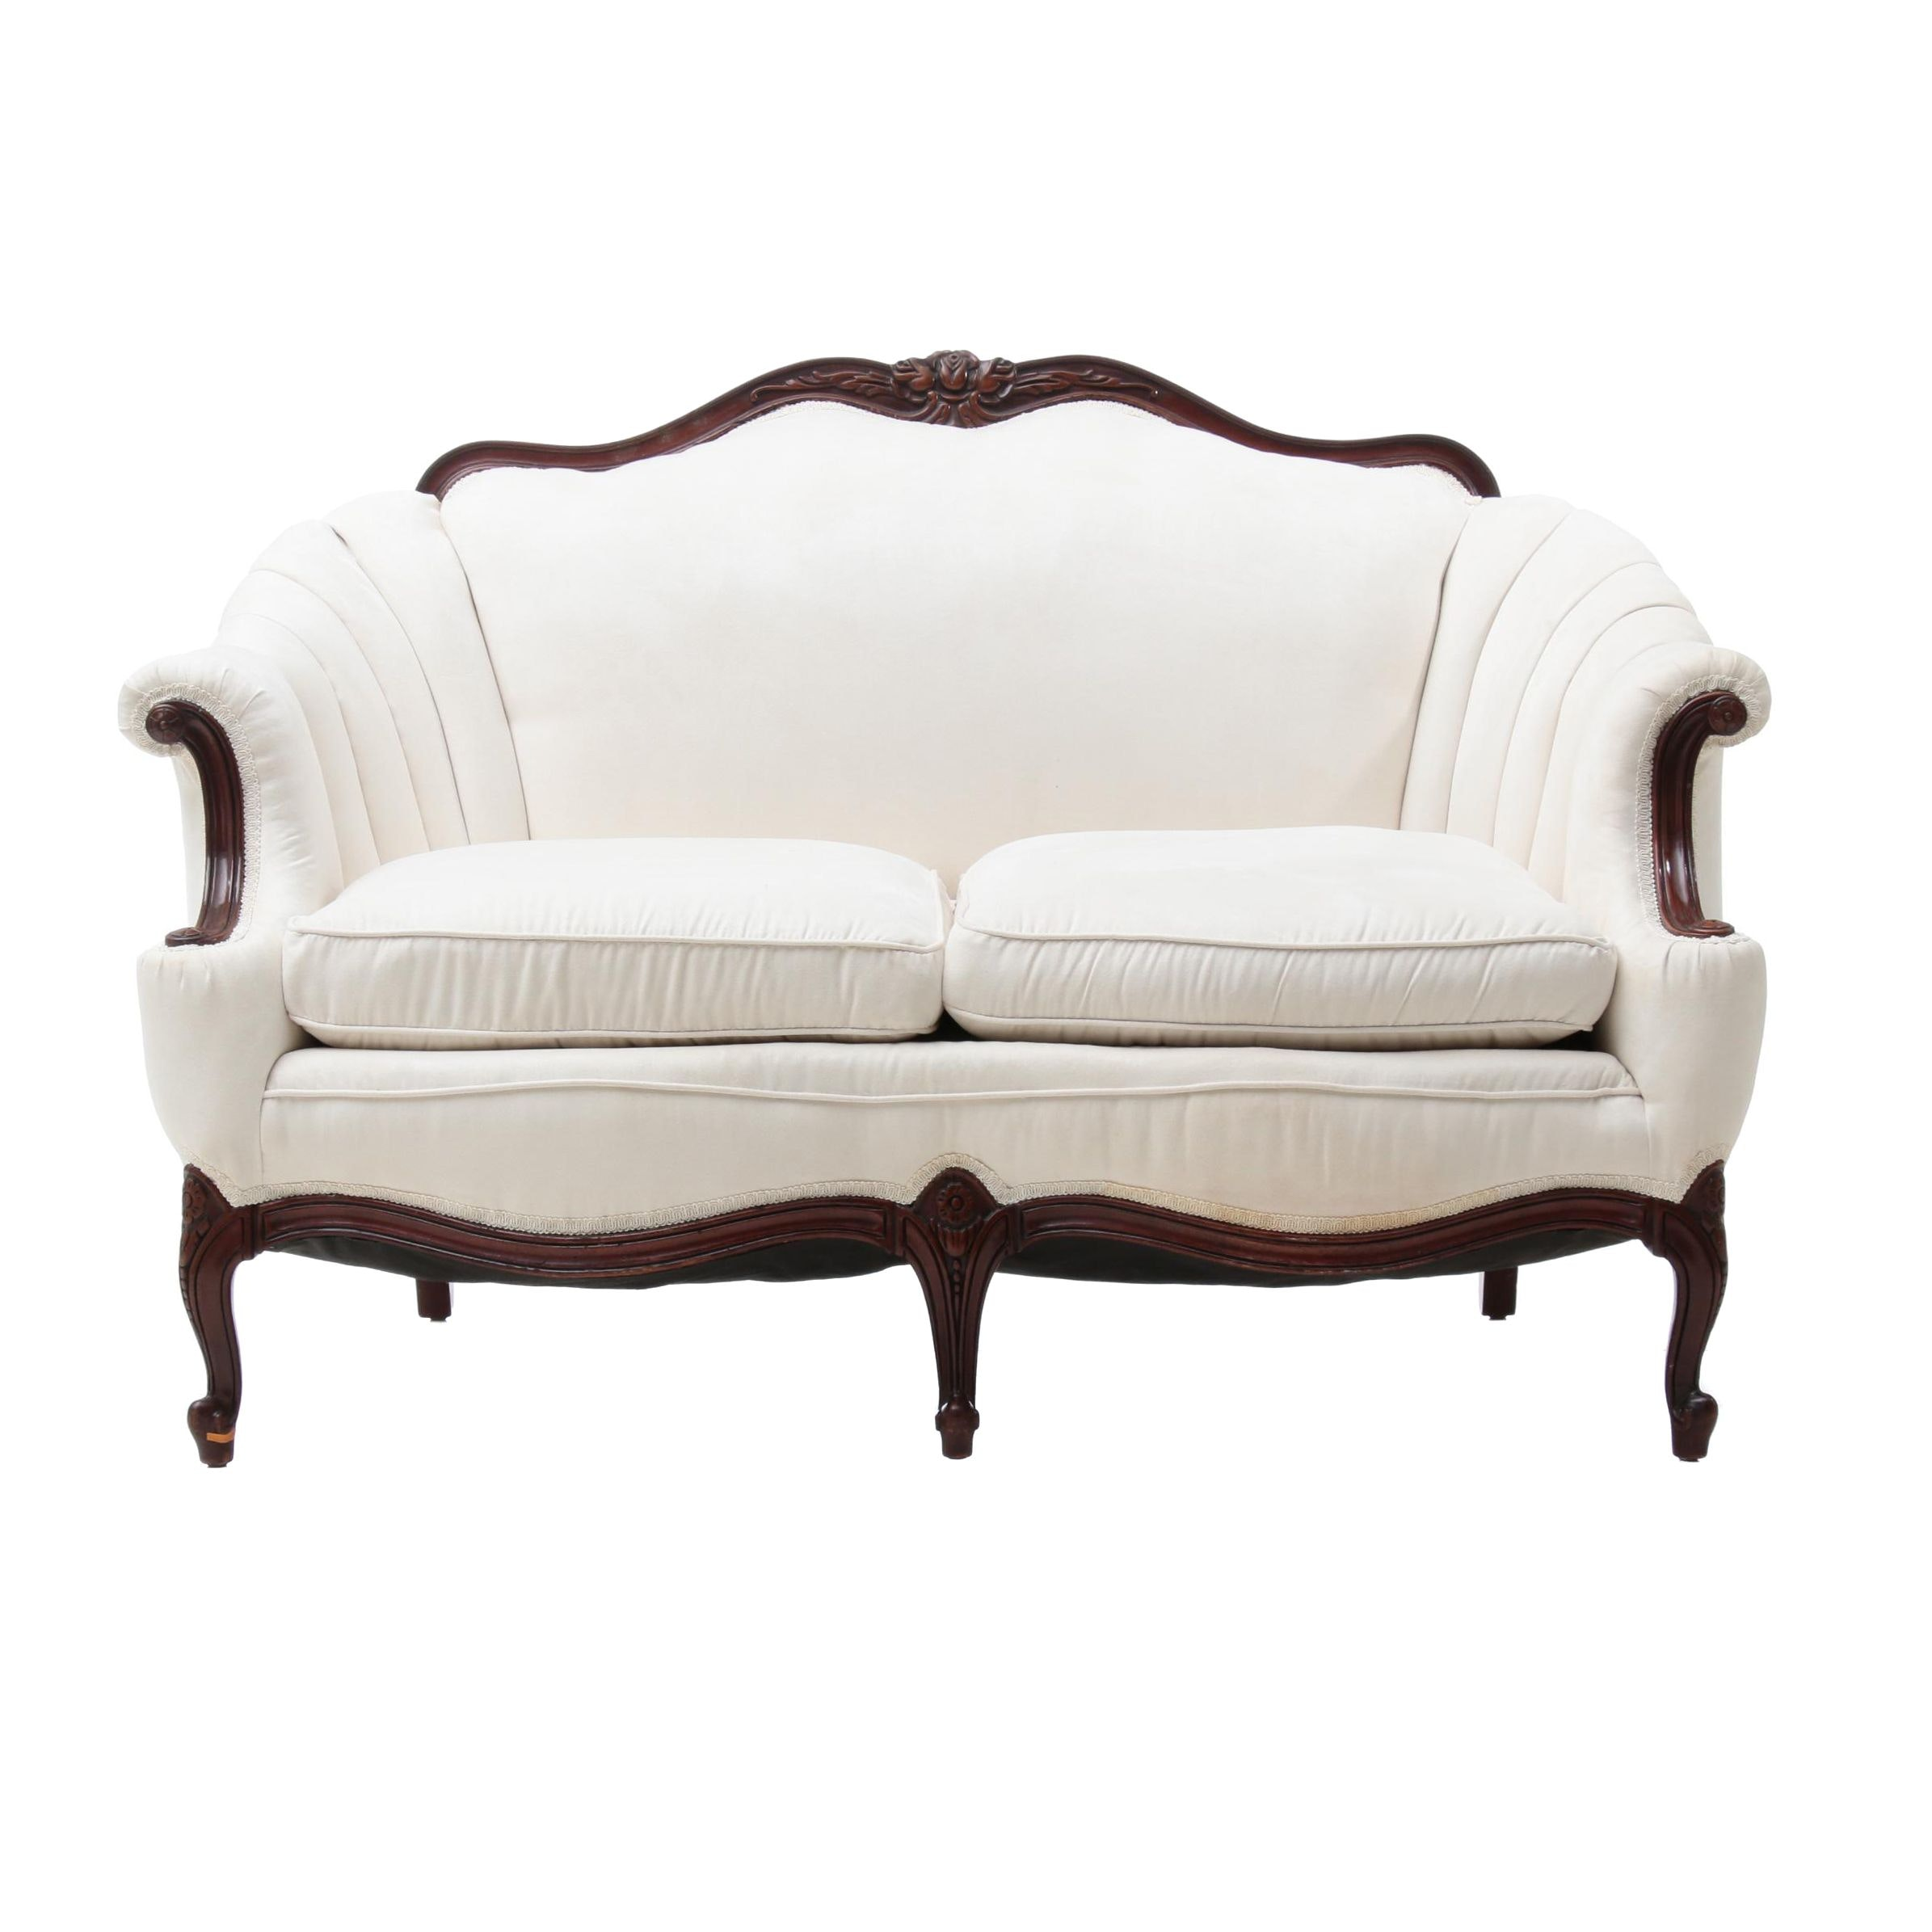 French Provincial Style Camel Back Love Seat in Cream, Late 20th Century